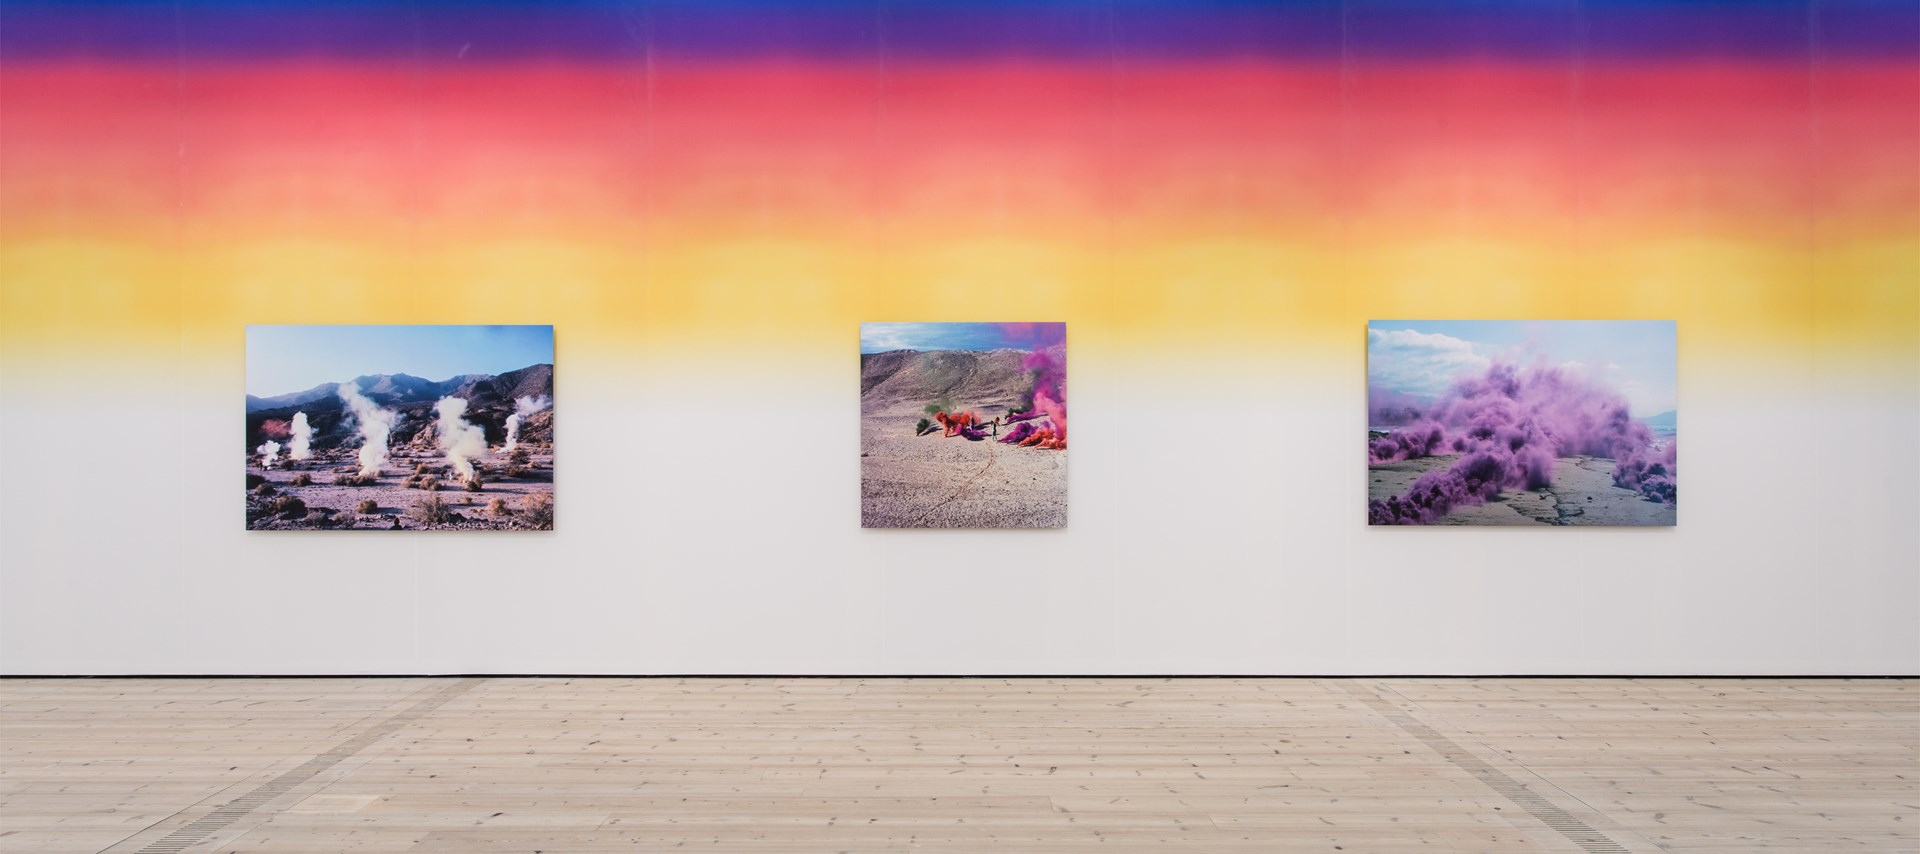 Judy Chicago: Installation View. Image: Rob Harris © BALTIC 2019